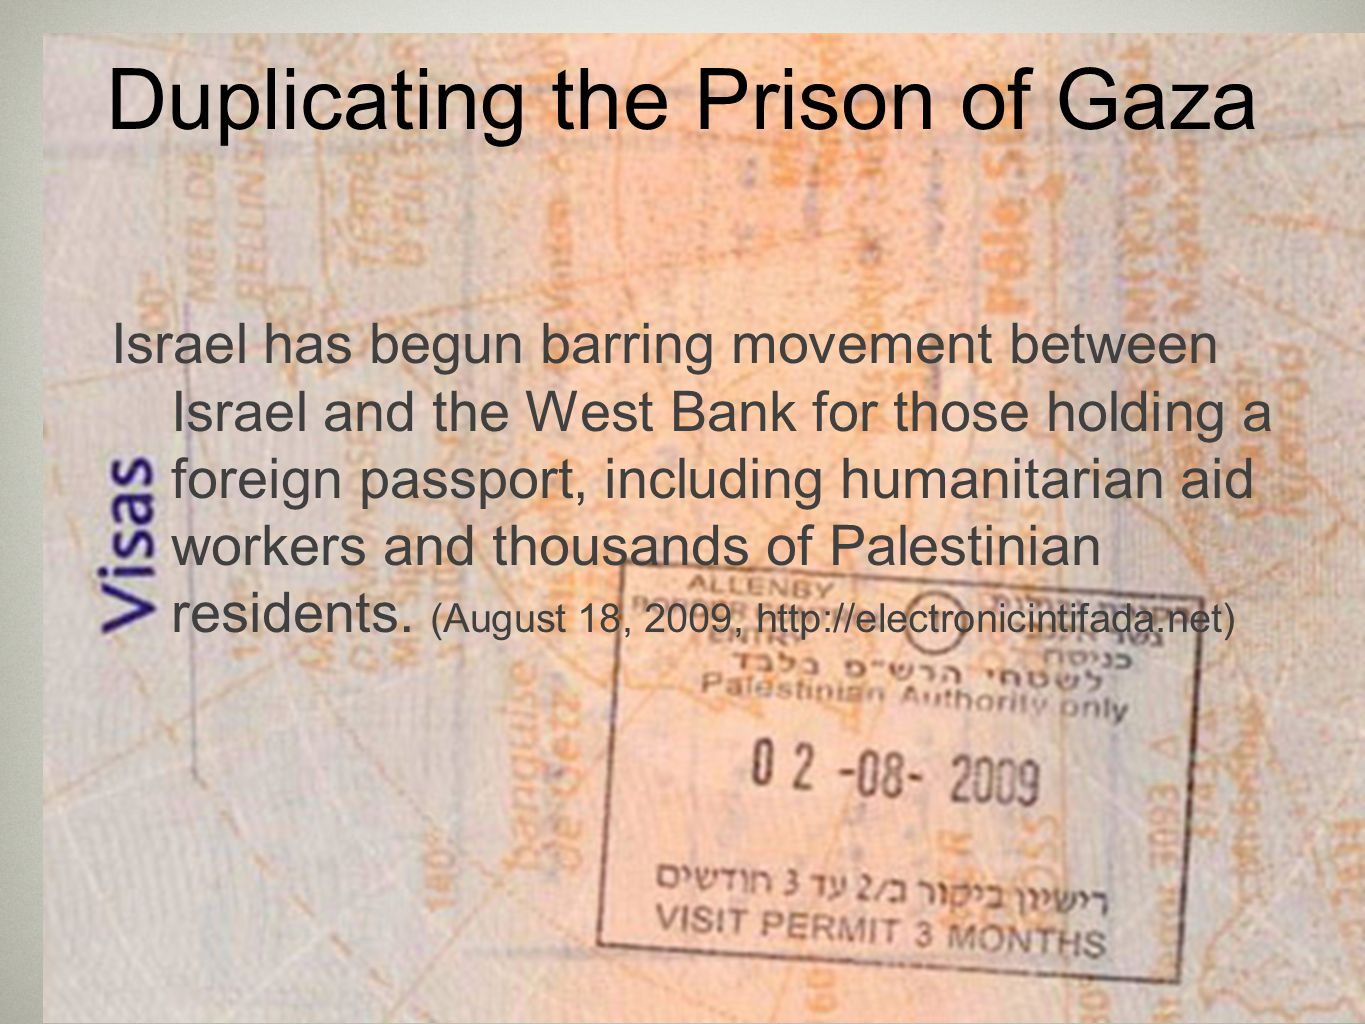 Duplicating the Prison of Gaza Israel has begun barring movement between Israel and the West Bank for those holding a foreign passport, including humanitarian aid workers and thousands of Palestinian residents.